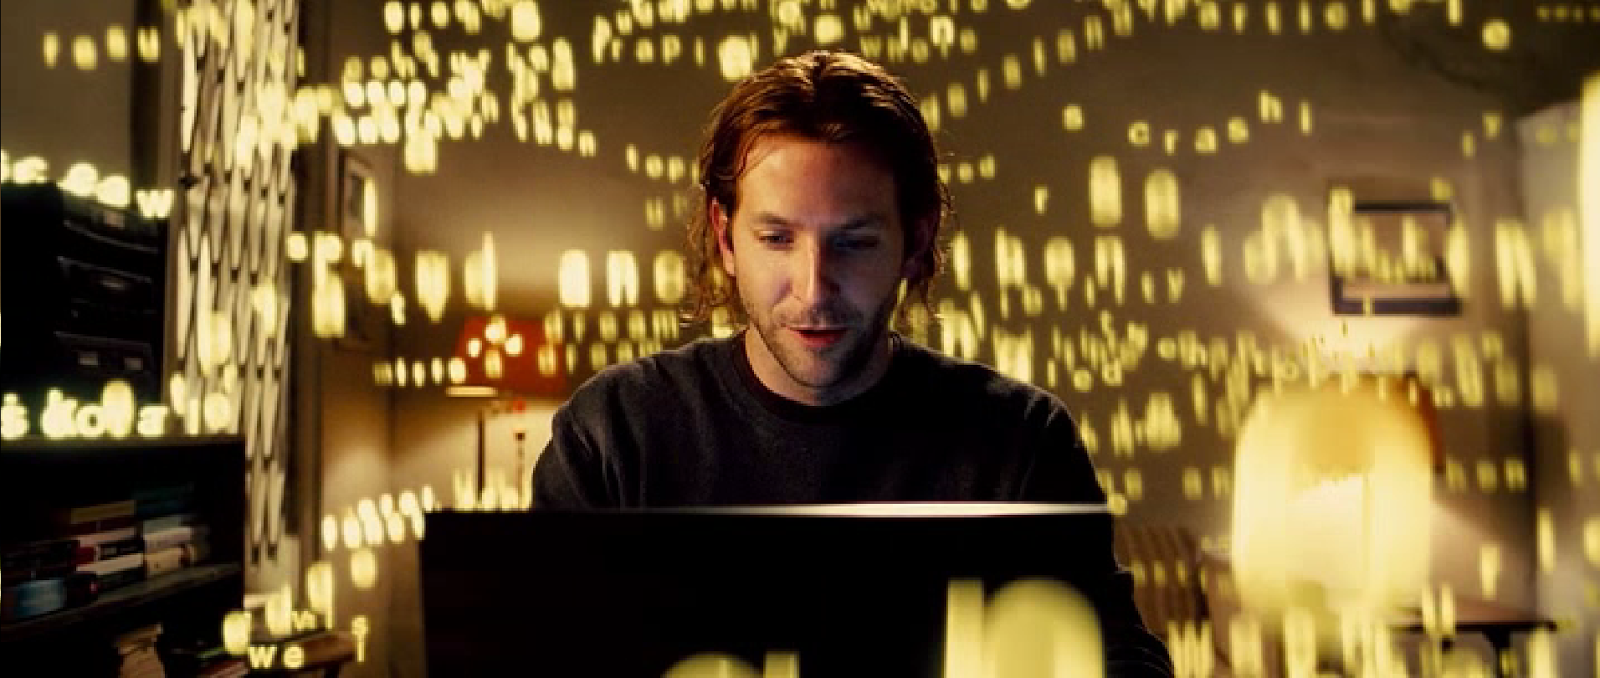 Limitless - Bradley Cooper | A Constantly Racing Mind